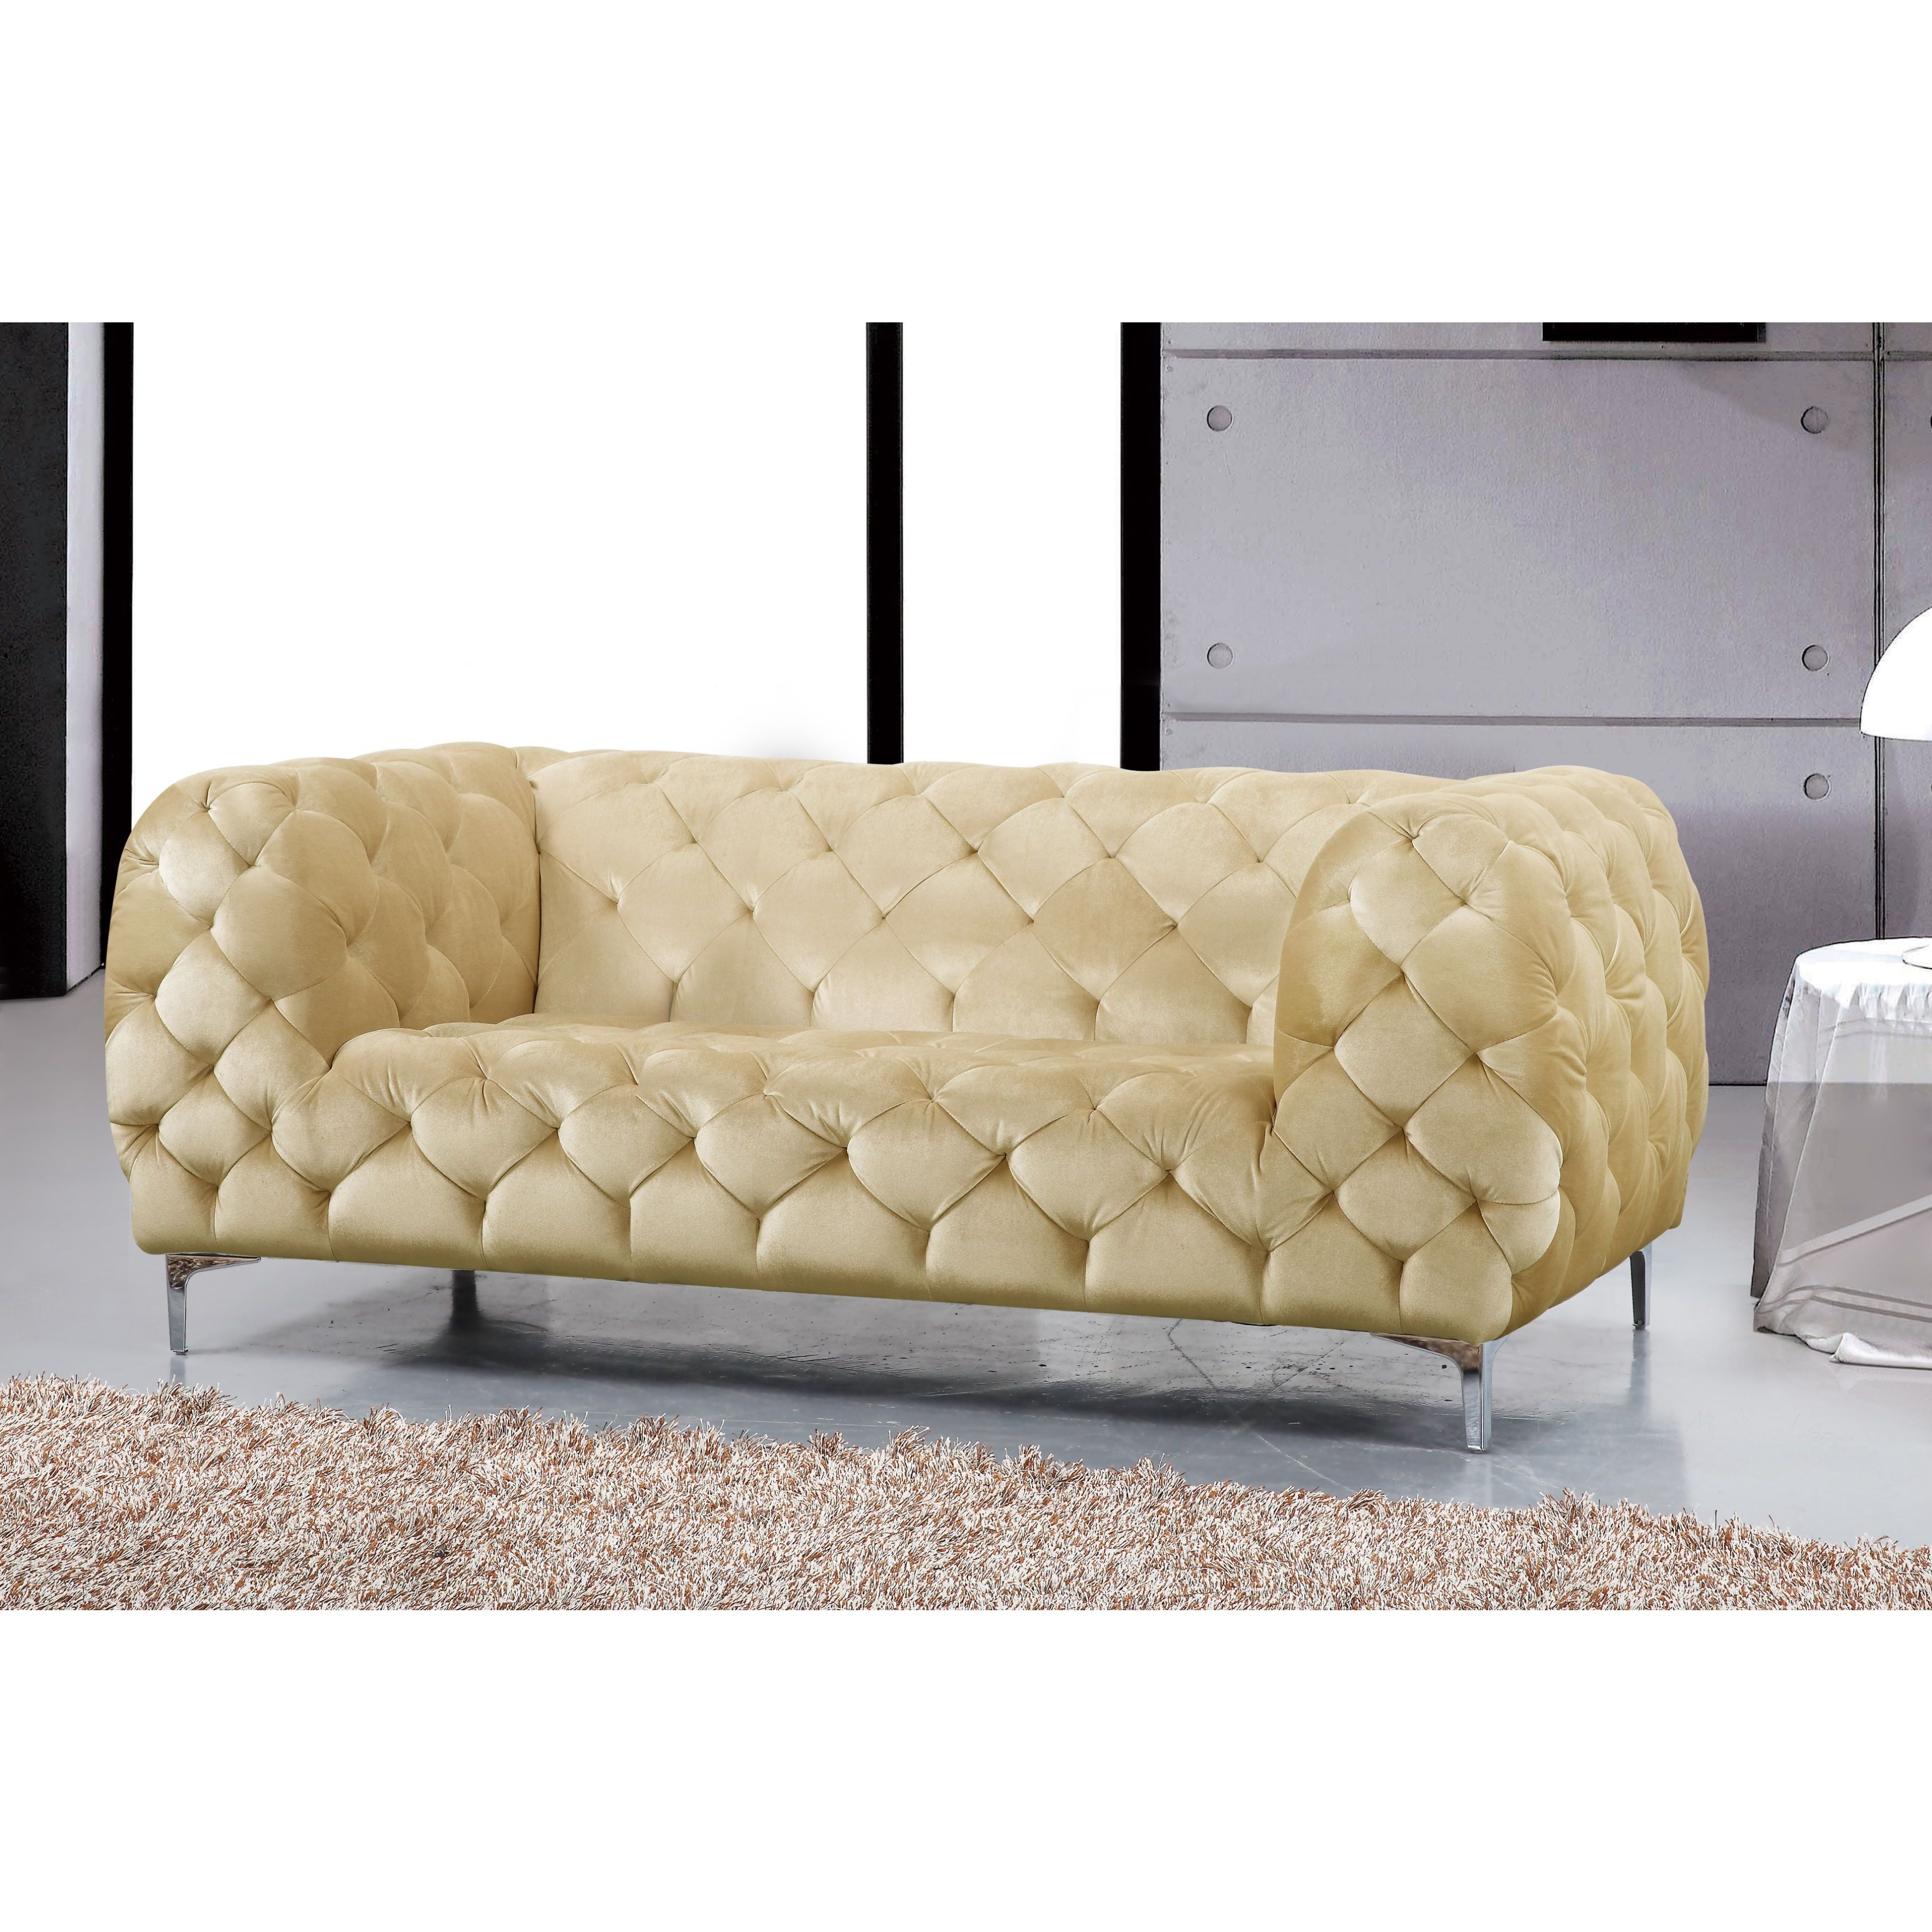 Shop Meridian Mercer Beige Velvet 4 Piece Furniture Set – Free With Regard To Mercer Foam Oversized Sofa Chairs (Image 18 of 25)